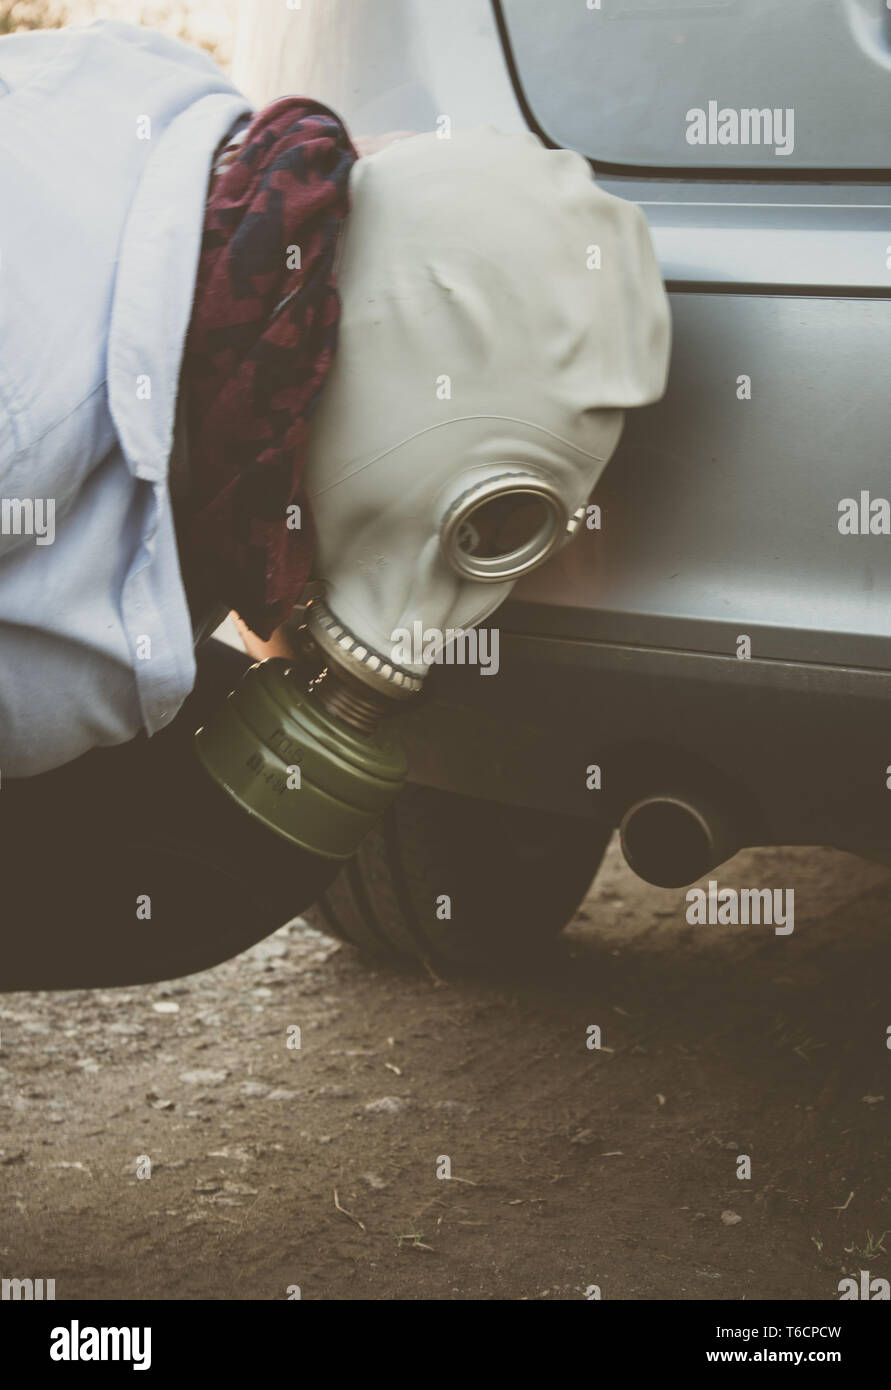 exhaust scandal - Stock Image